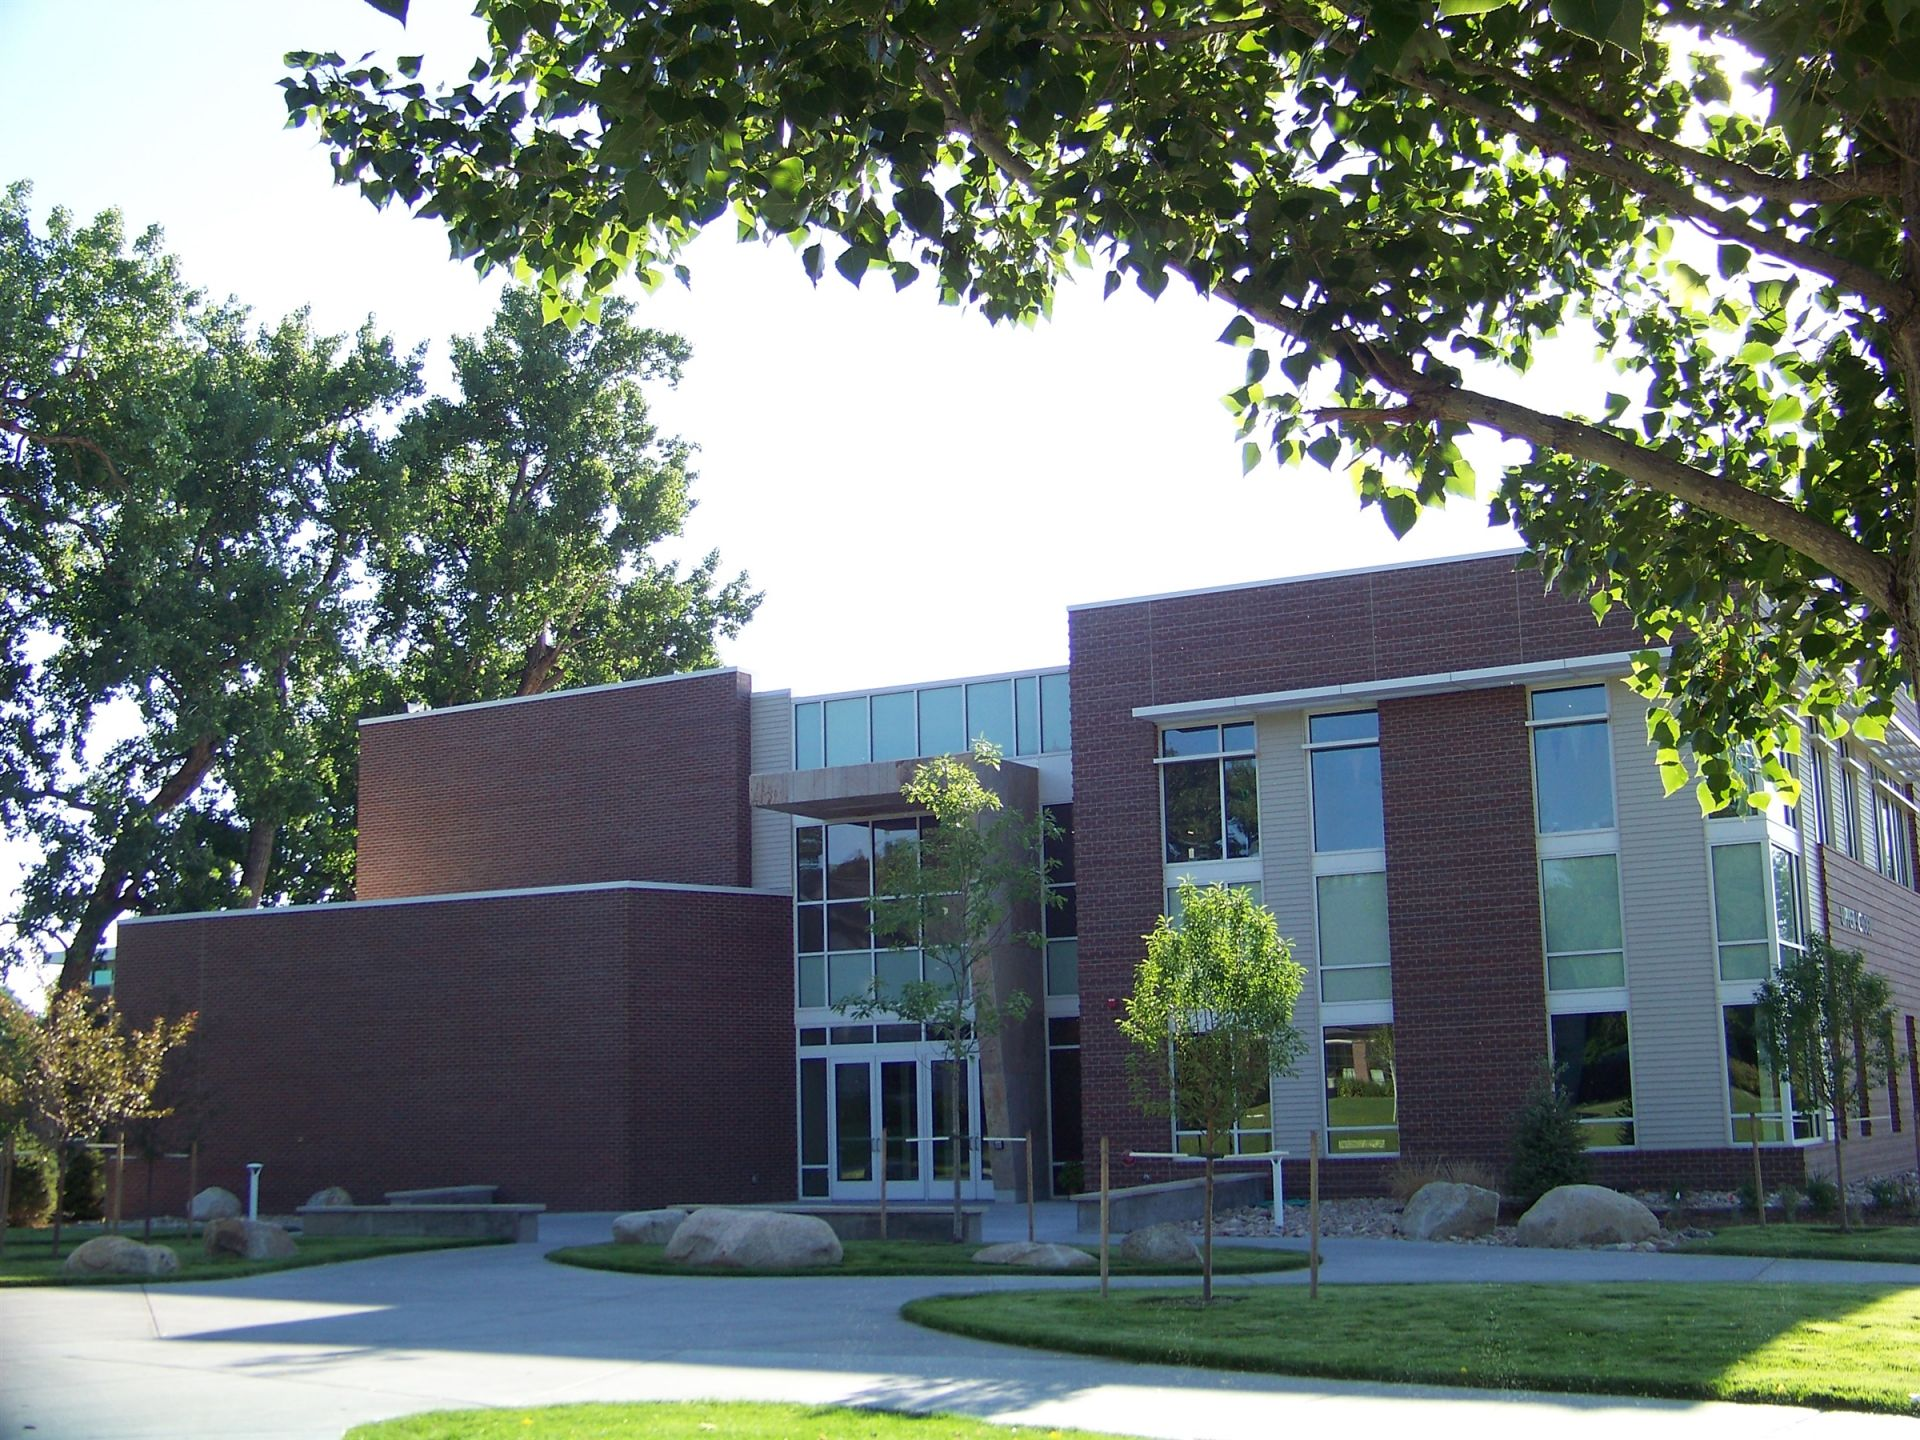 The Upper School building was presented to the Colorado Academy Community on January 7, 2013, after a whirlwind fundraising campaign and construction schedule.